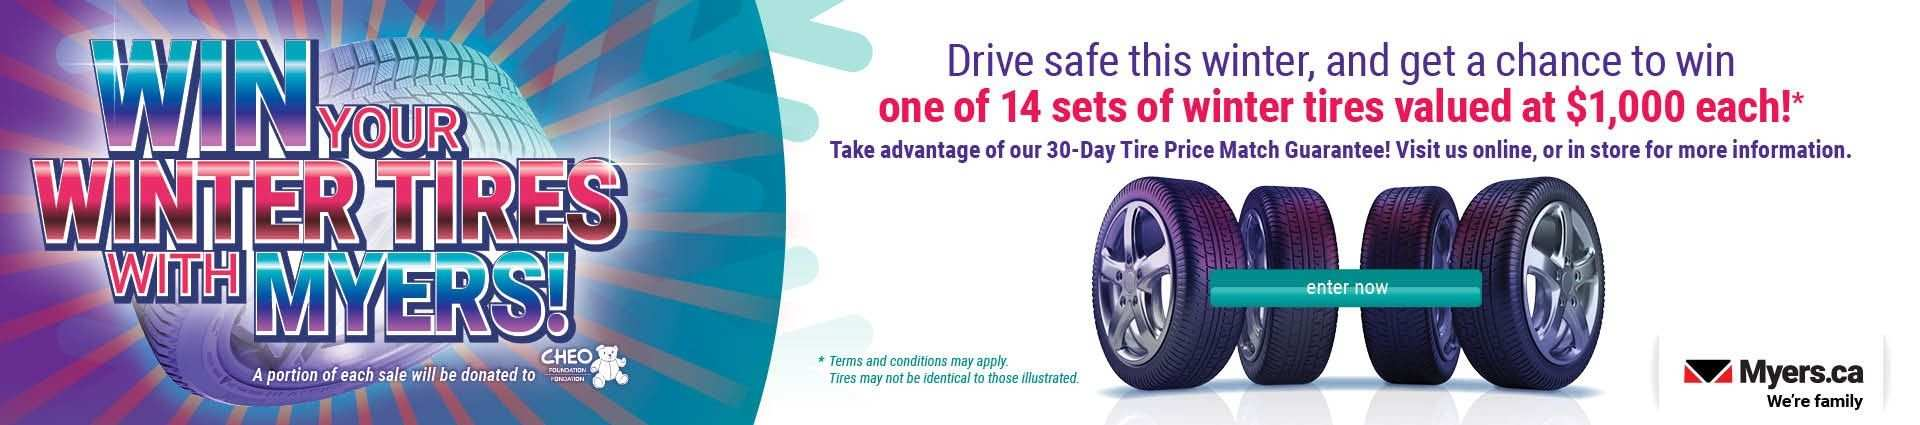 your winter tires